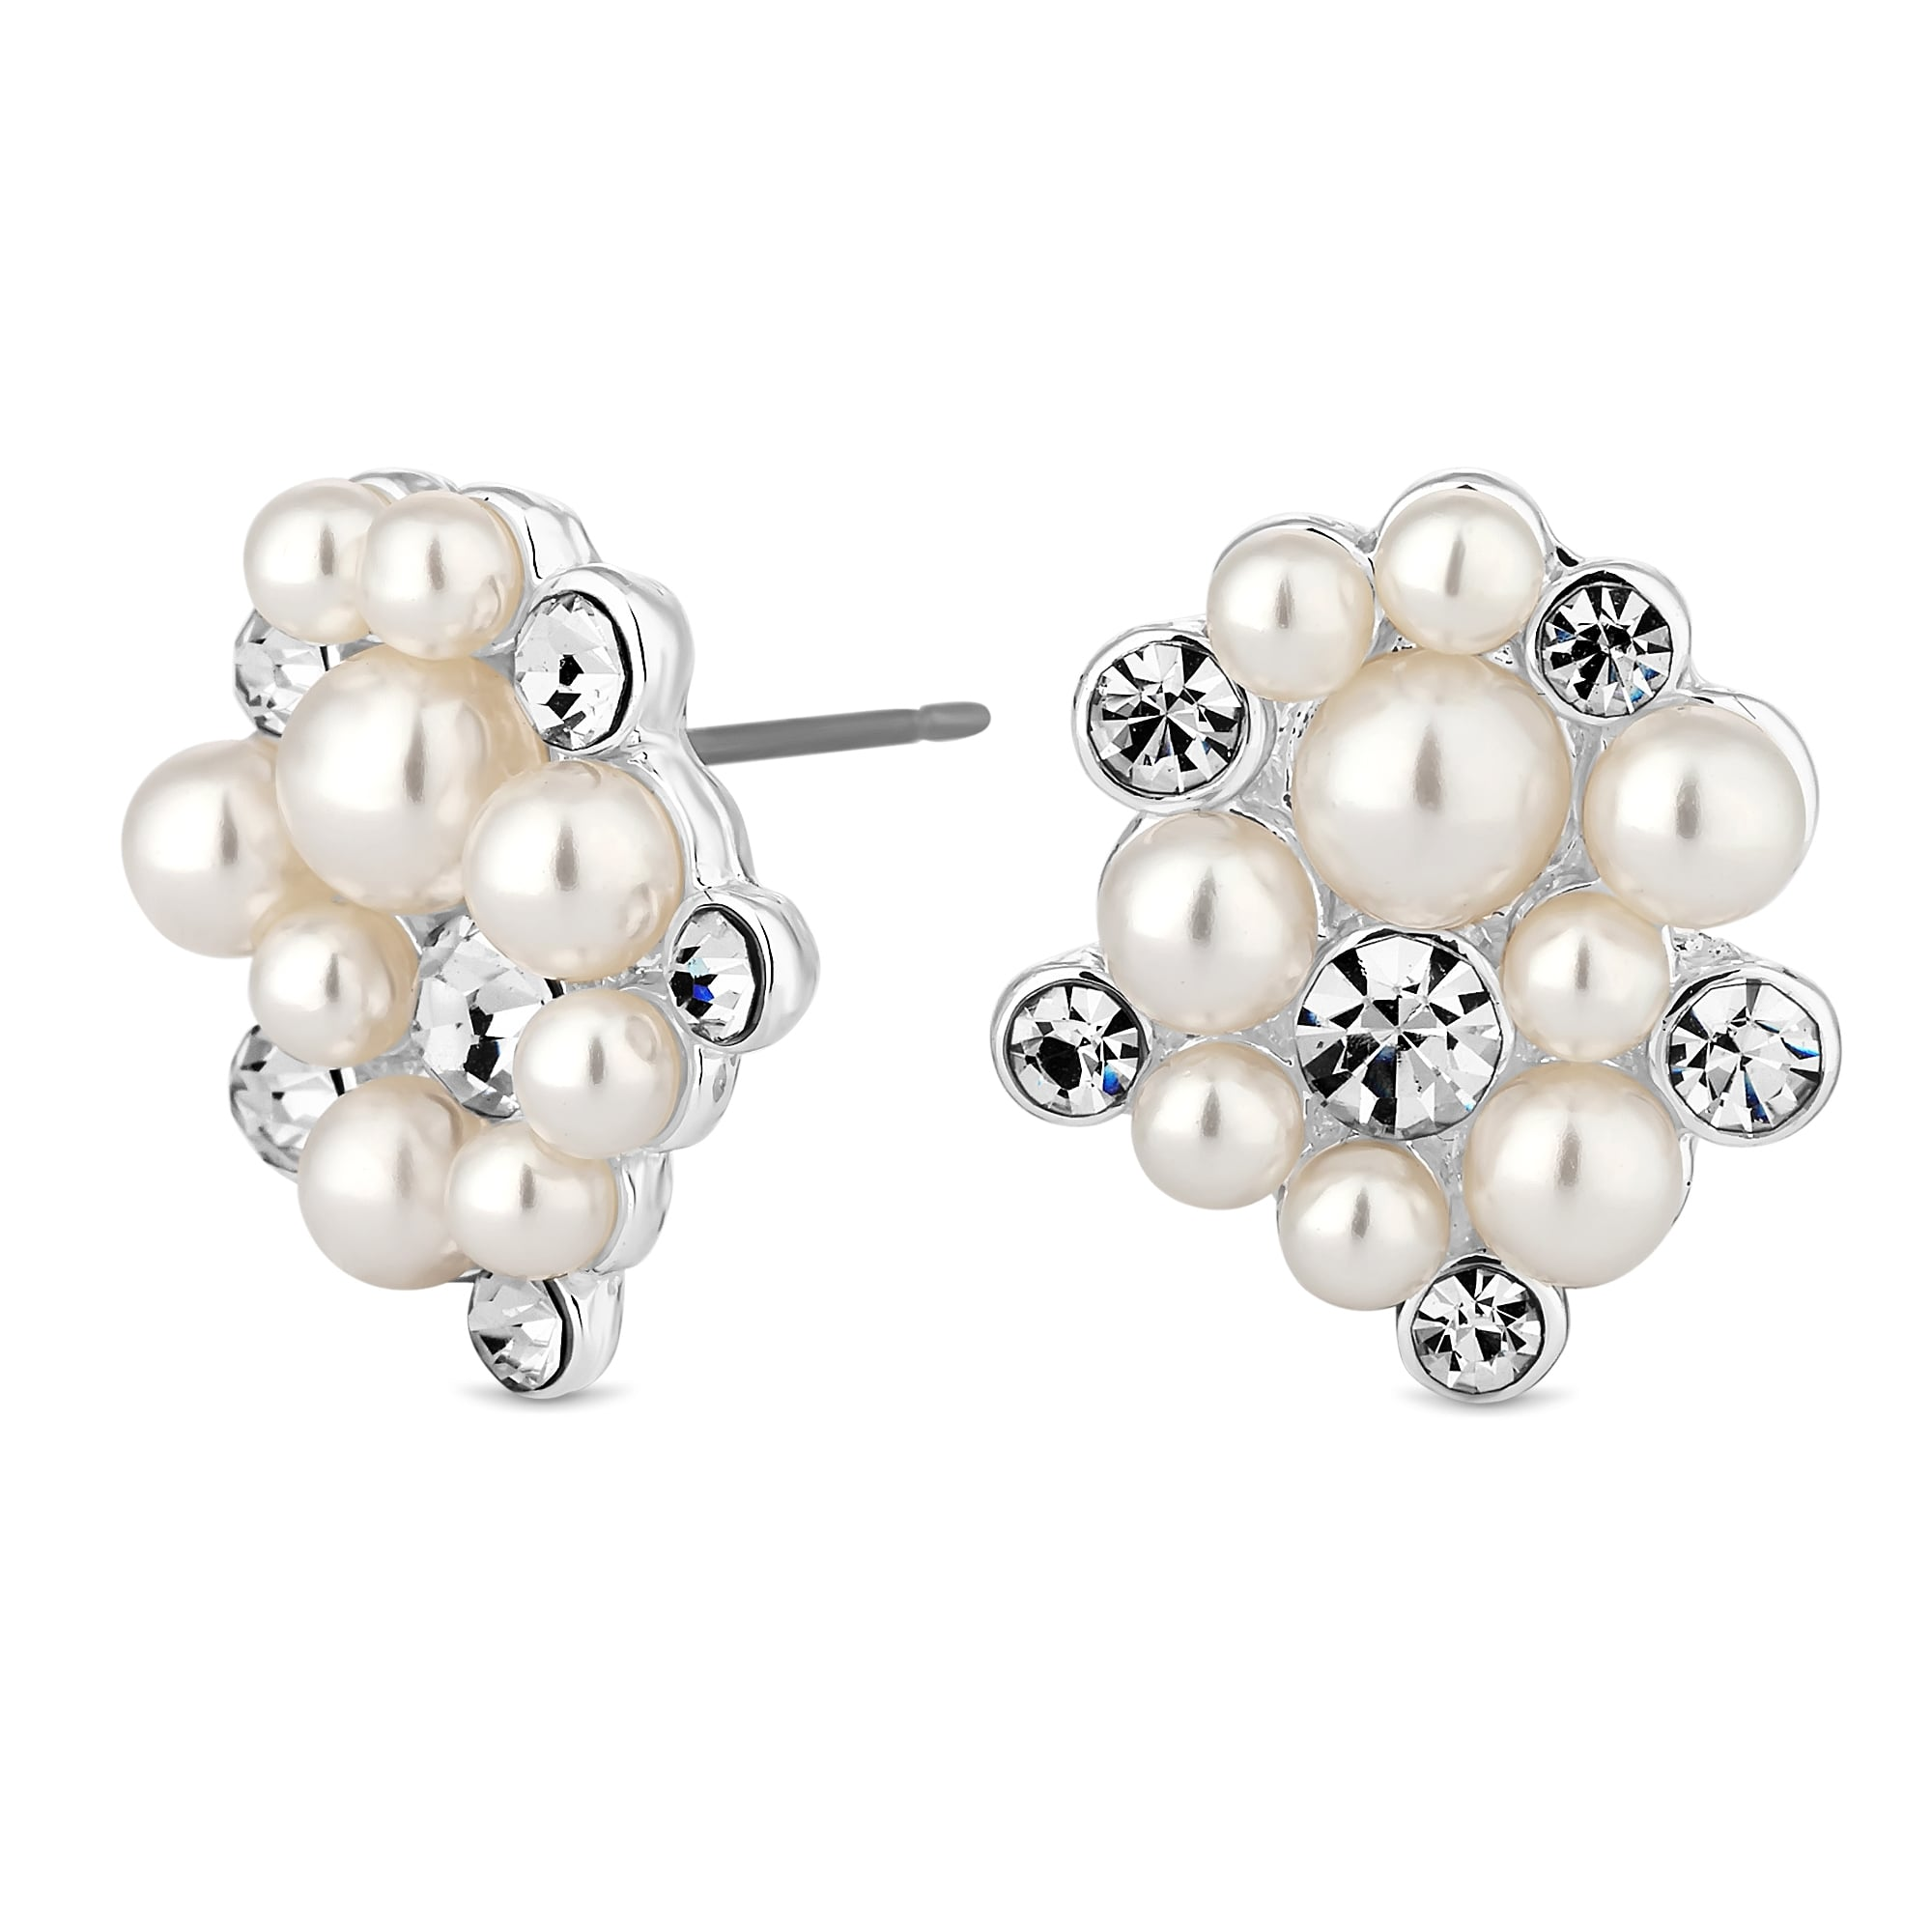 stud earrings loading ers image women white designer is pave gold jewellery solid itm